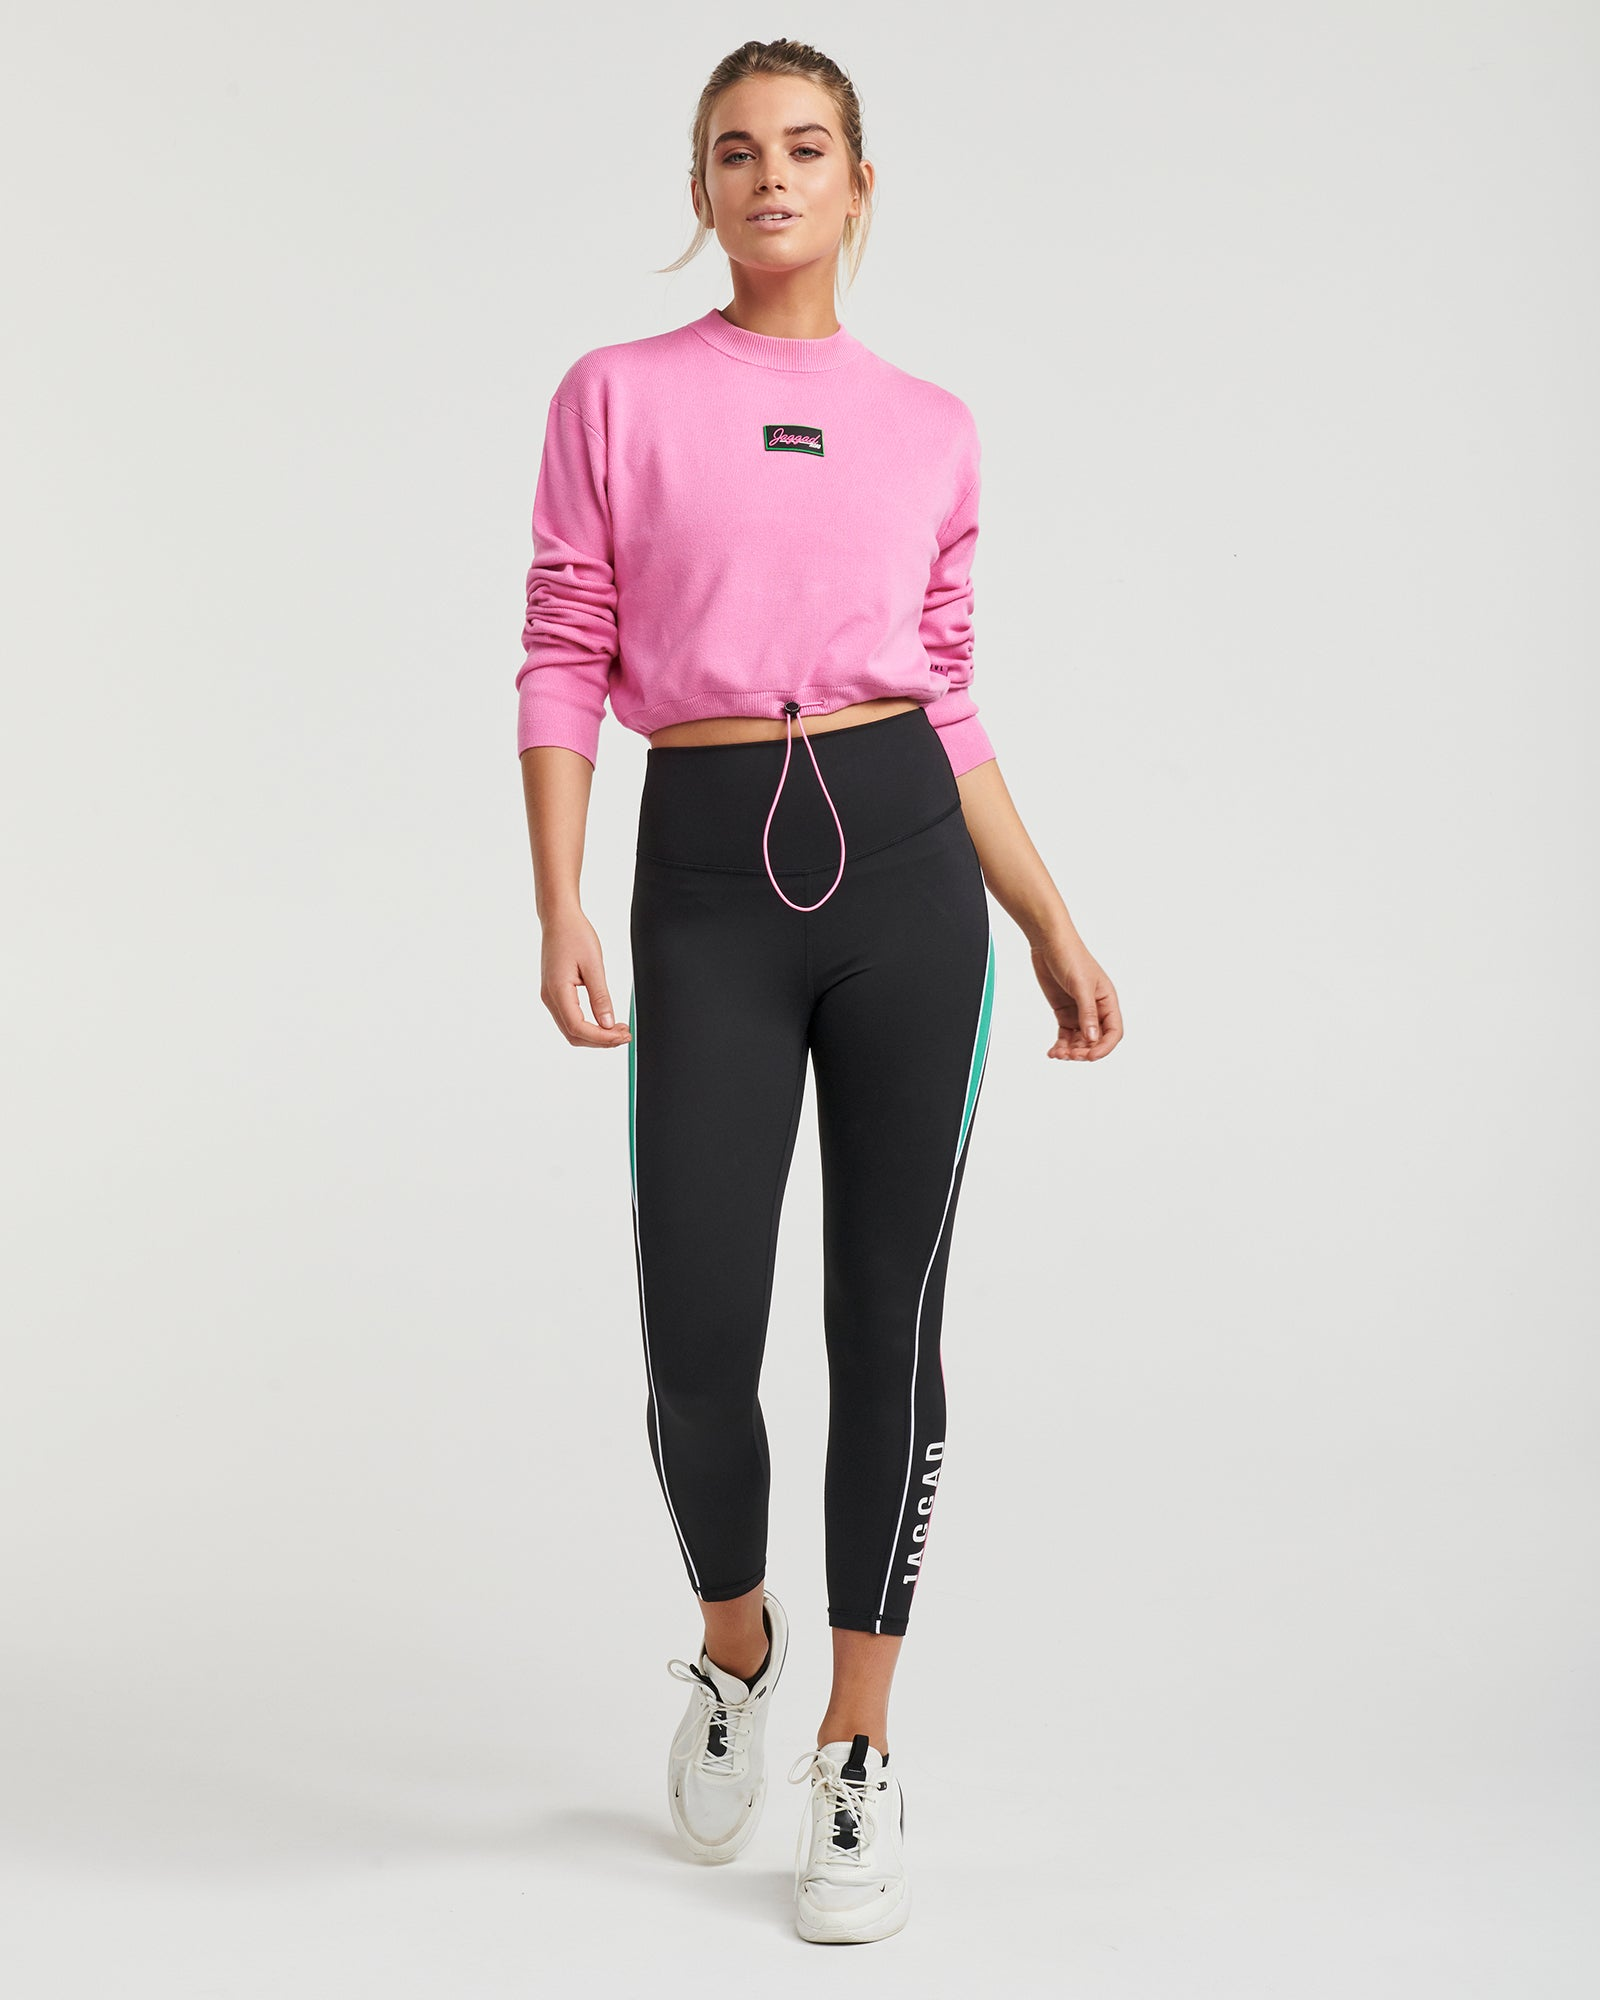 Cruze Long Sleeve Knit Top